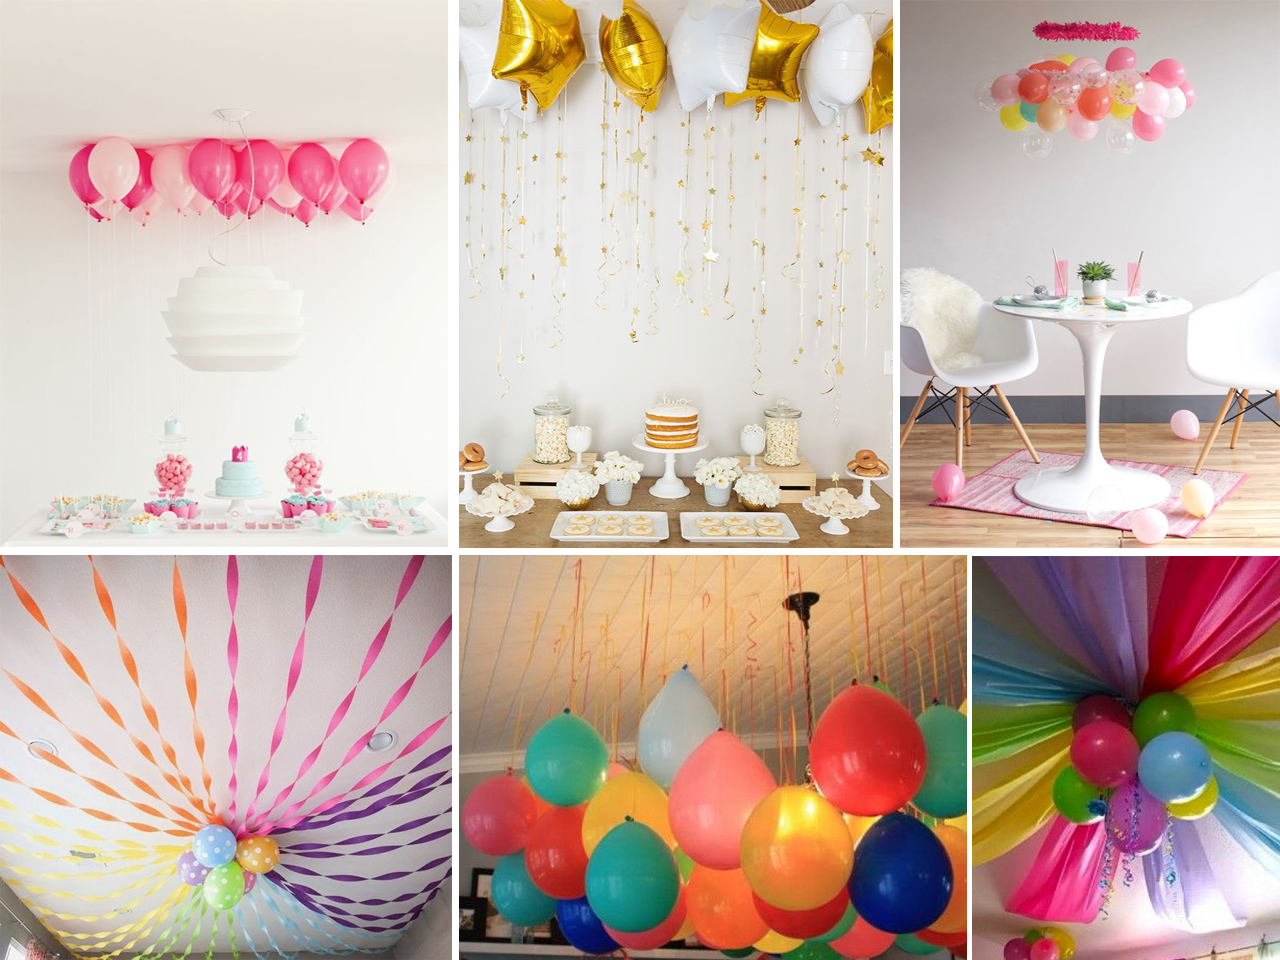 Descubre c mo decorar con globos con estas fant sticas ideas - Como decorar paredes salon ...